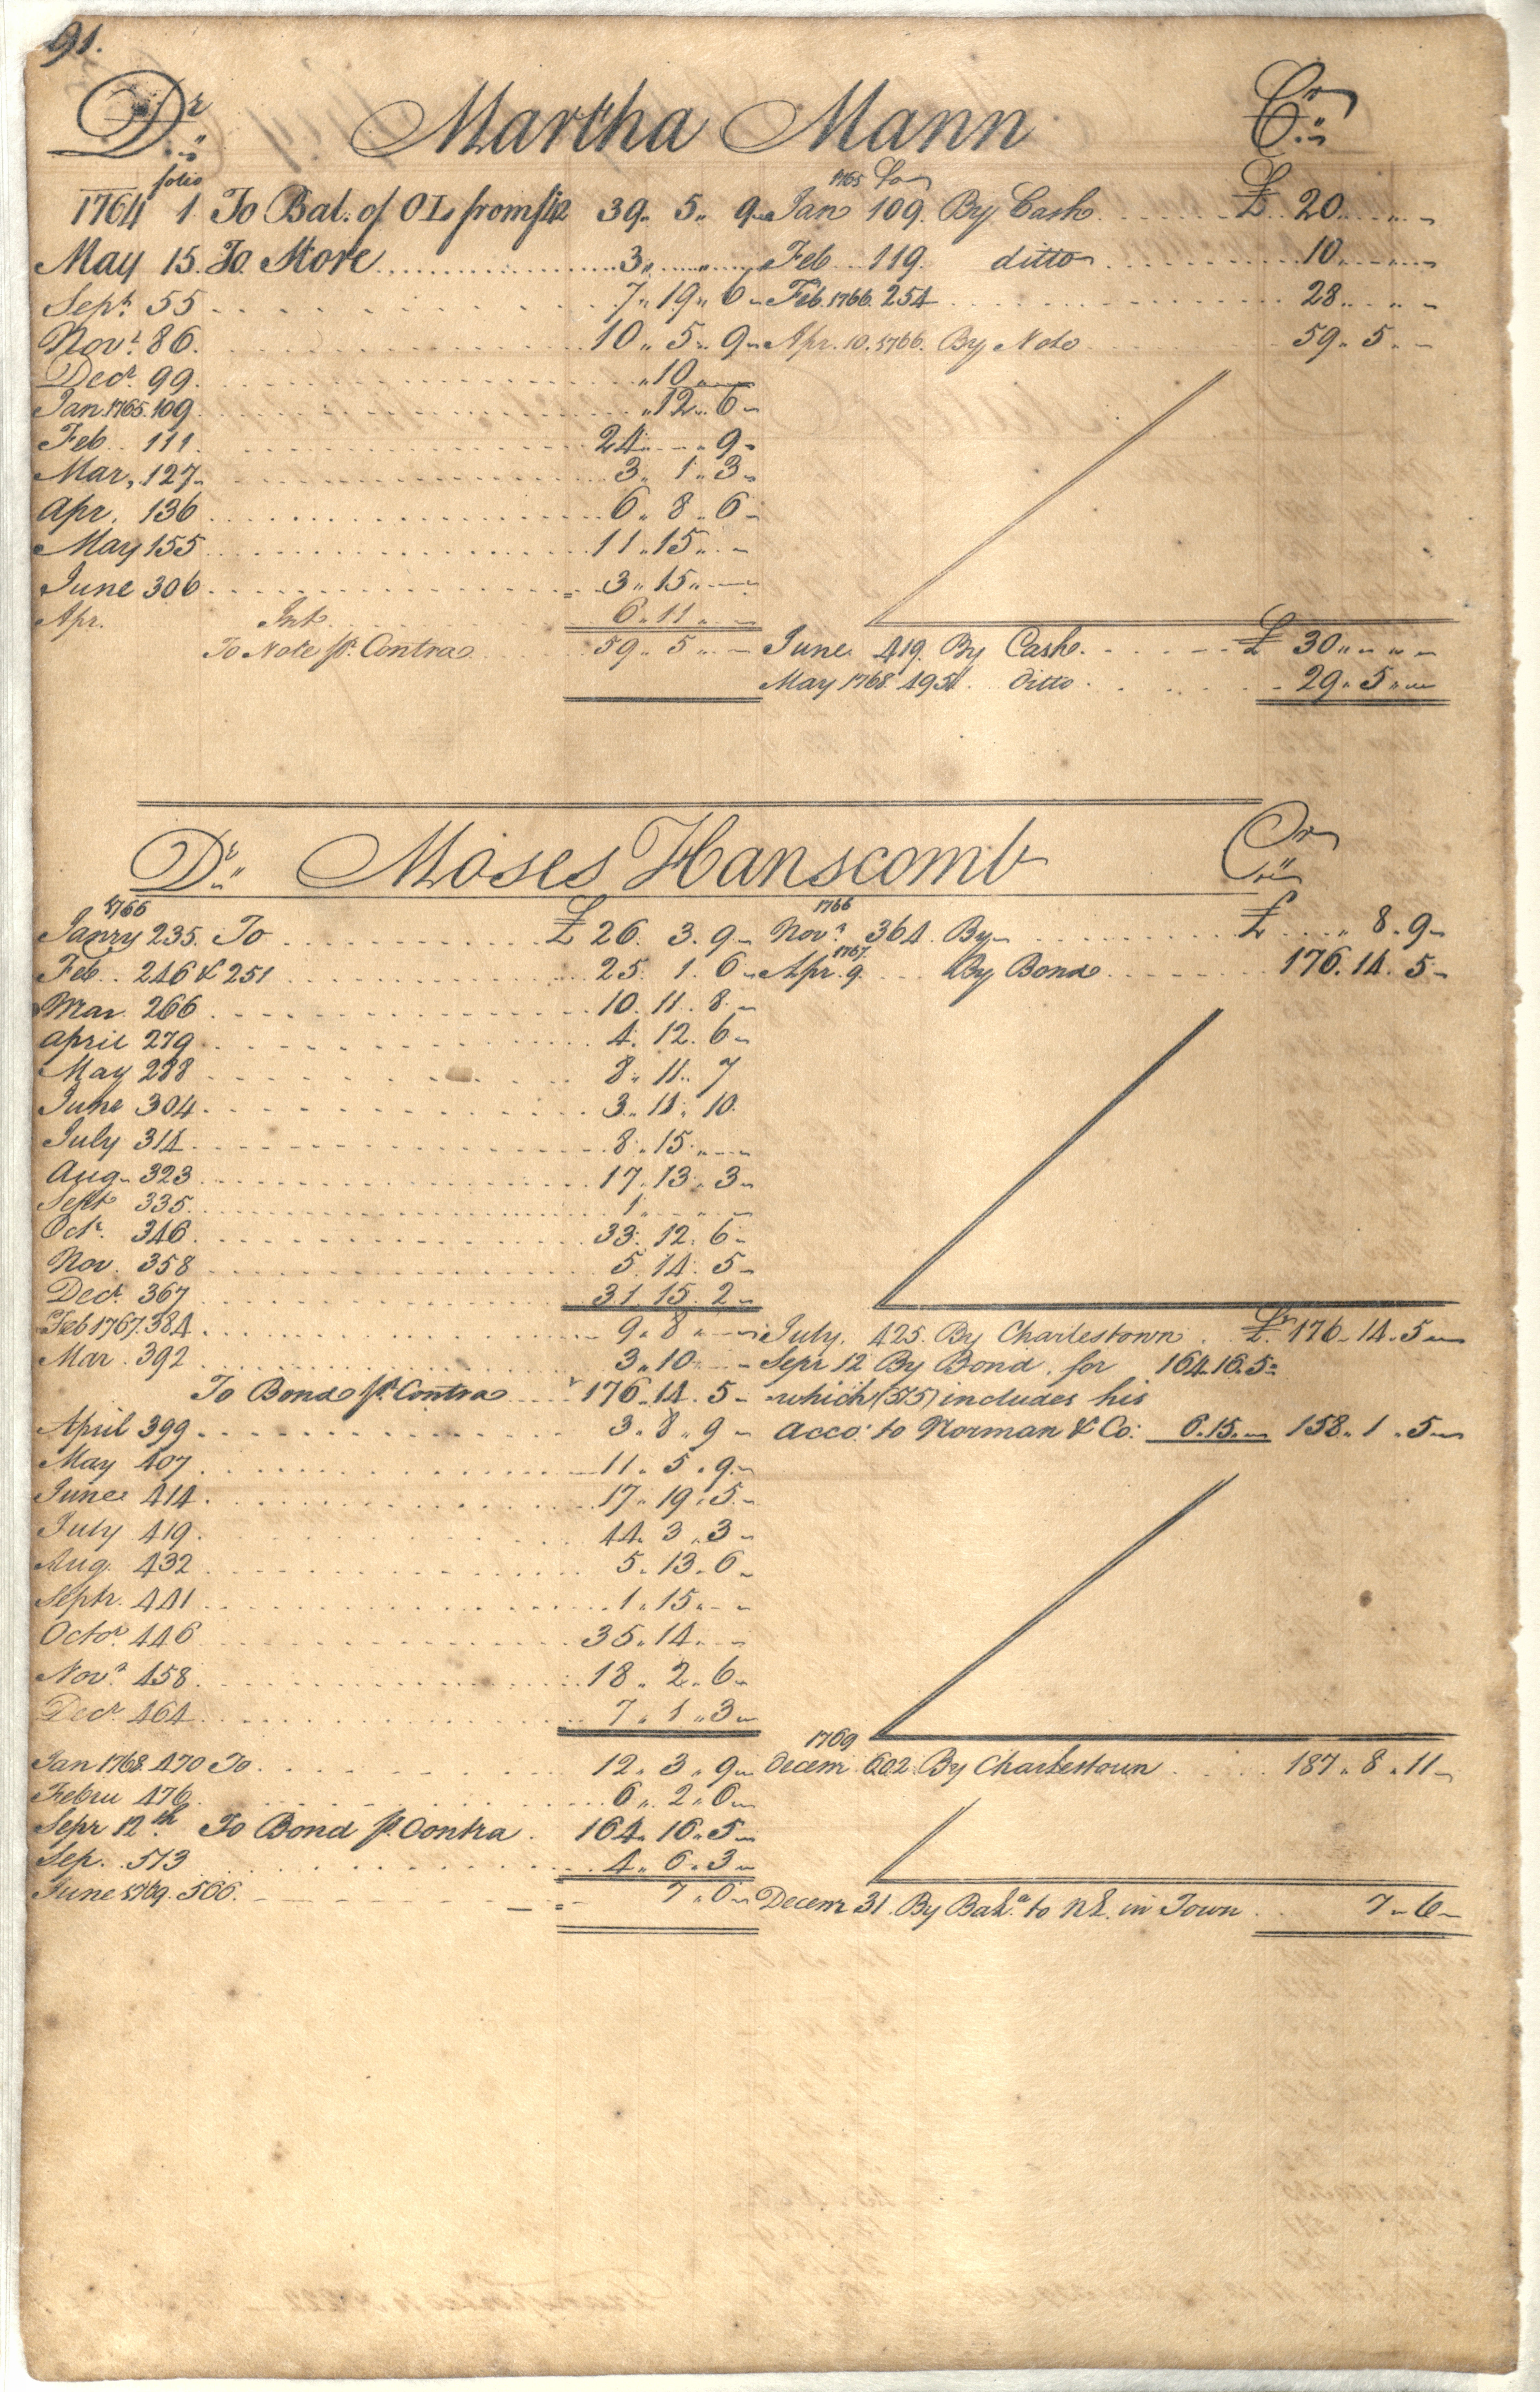 Plowden Weston's Business Ledger, page 91